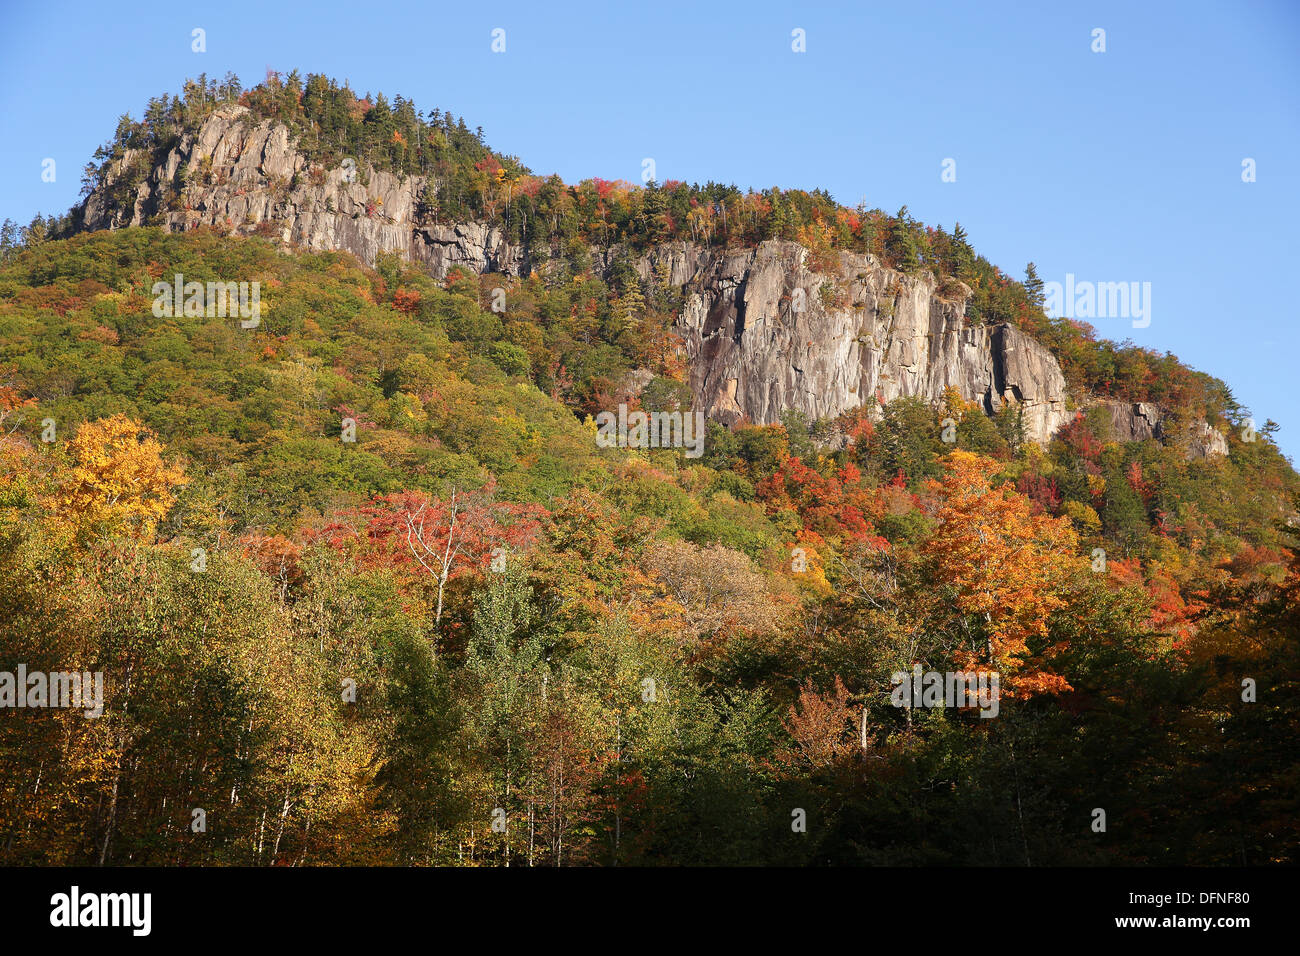 Frankenstein Cliff, Crawford Notch, New Hampshire, USA Stock Photo